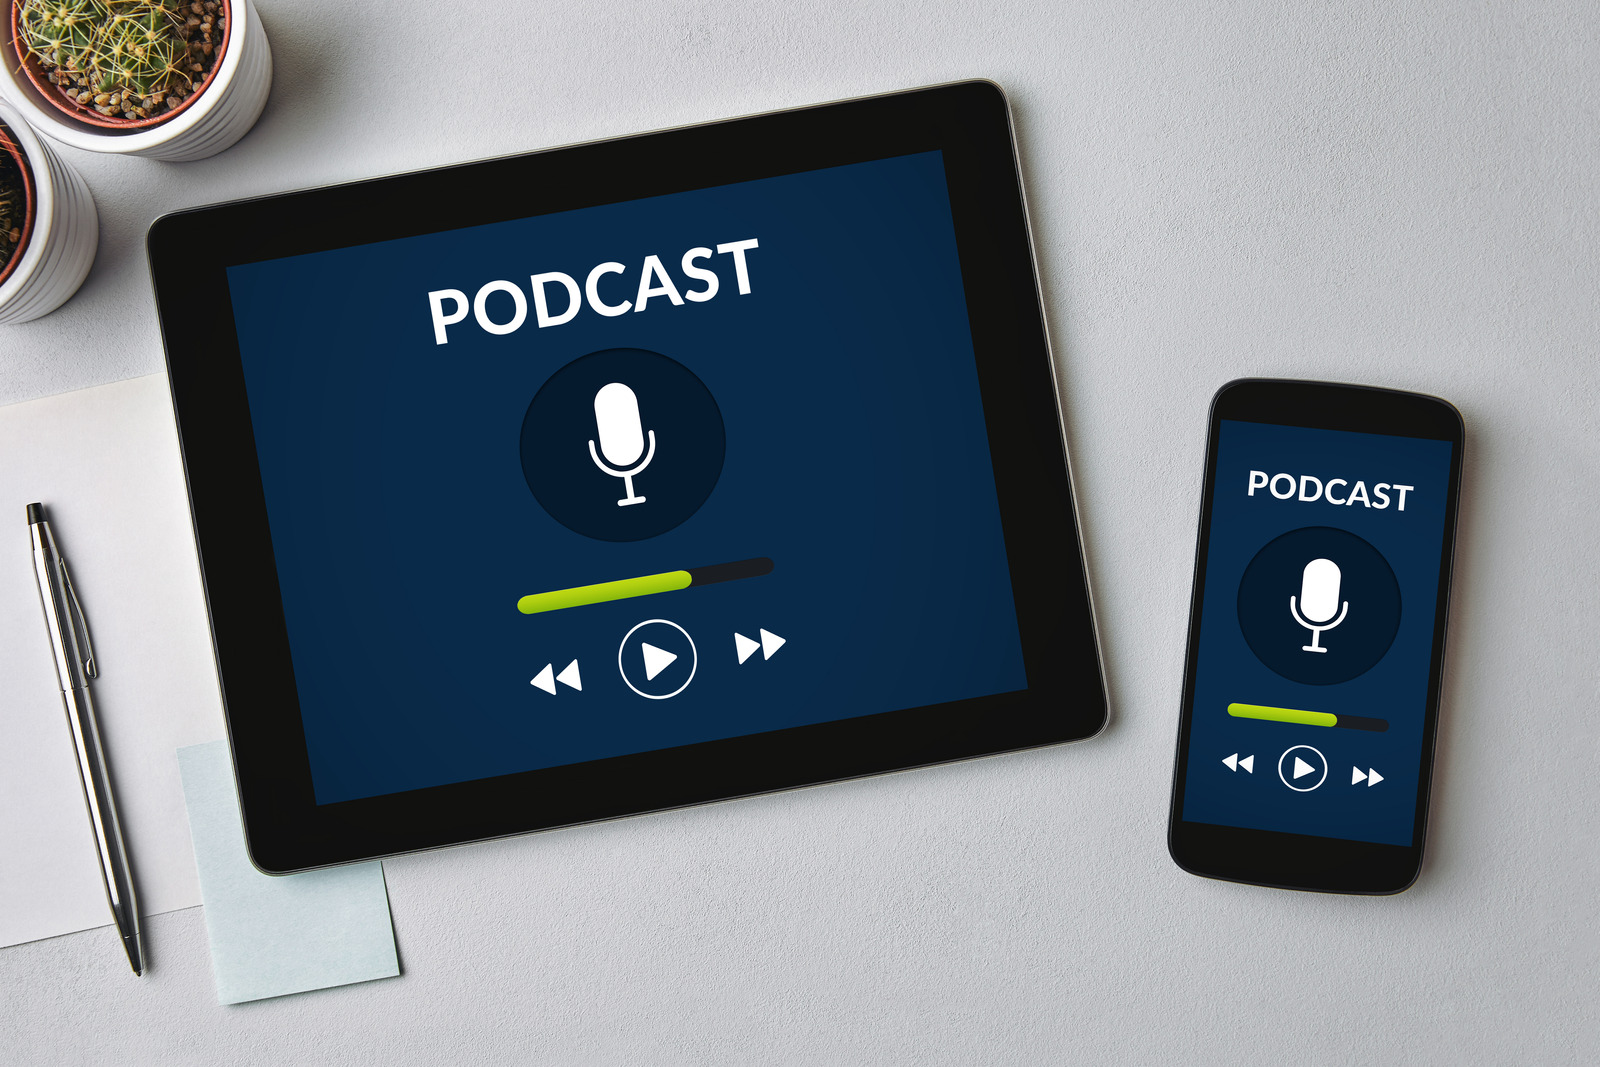 Podcast concept on tablet and smartphone screen